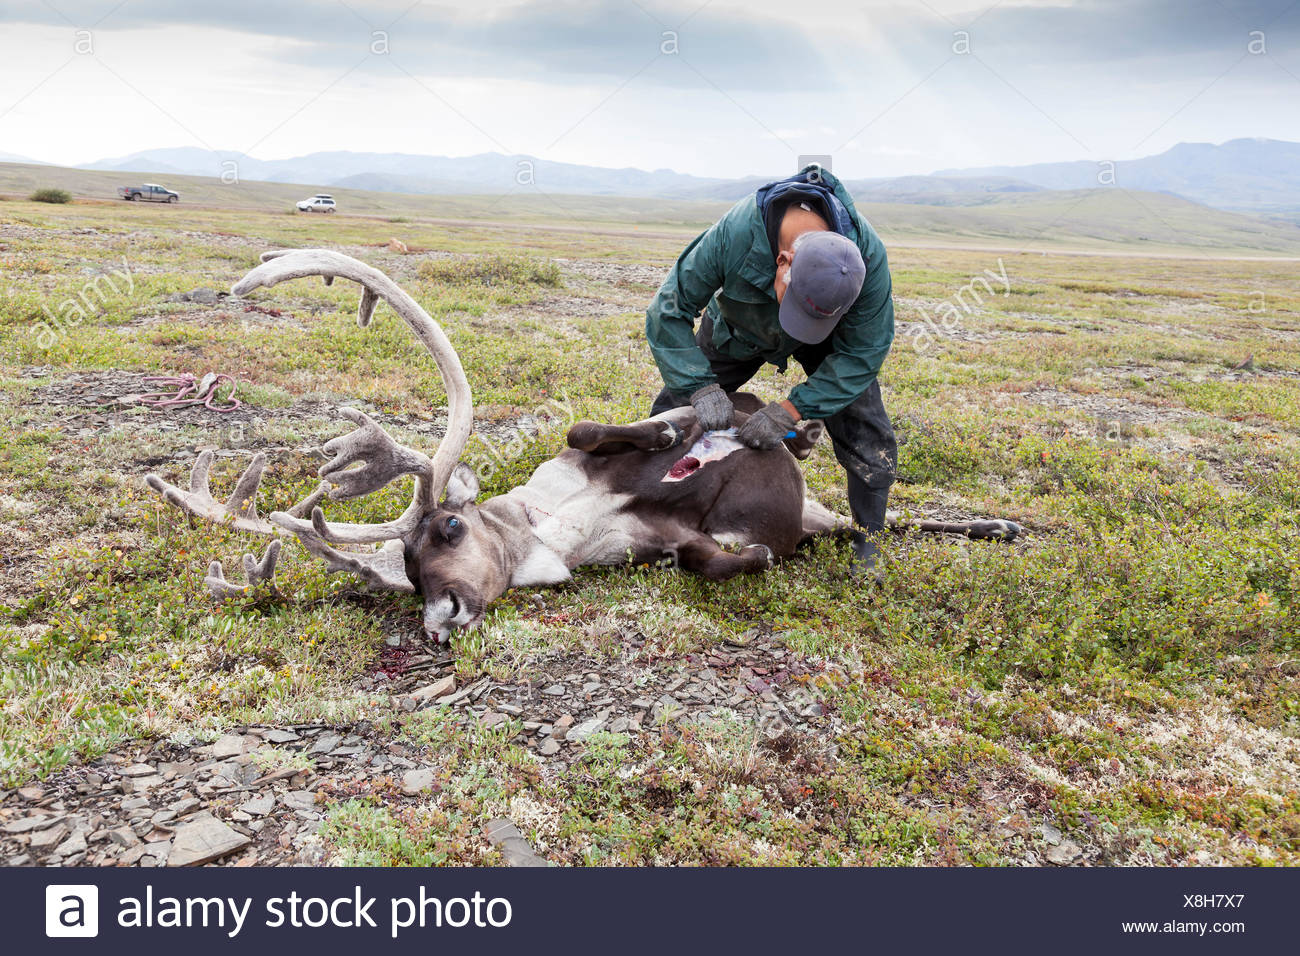 A Gwich'in hunter gutting the kill on the Arctic tundra - a caribou from the porcupine herd, Northwest Territories, Canada - Stock Image